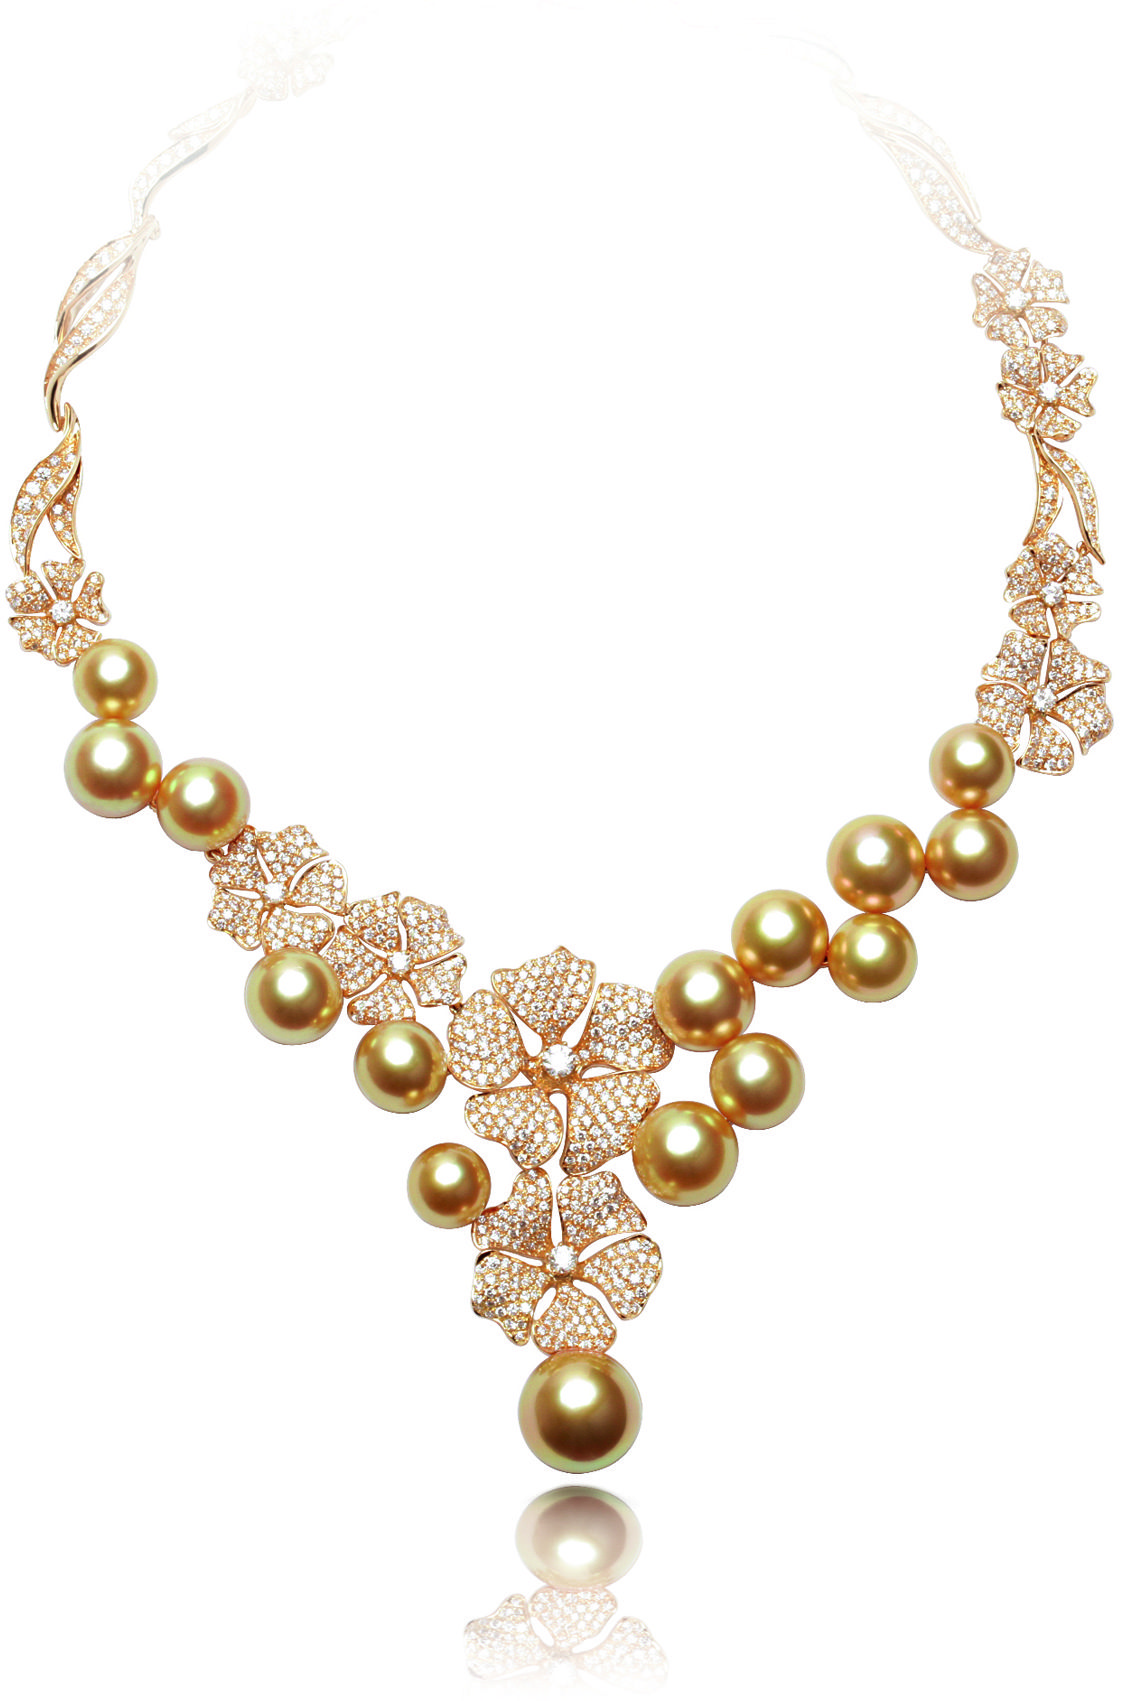 South Sea golden pearl, diamonds and 18k yellow gold necklace.